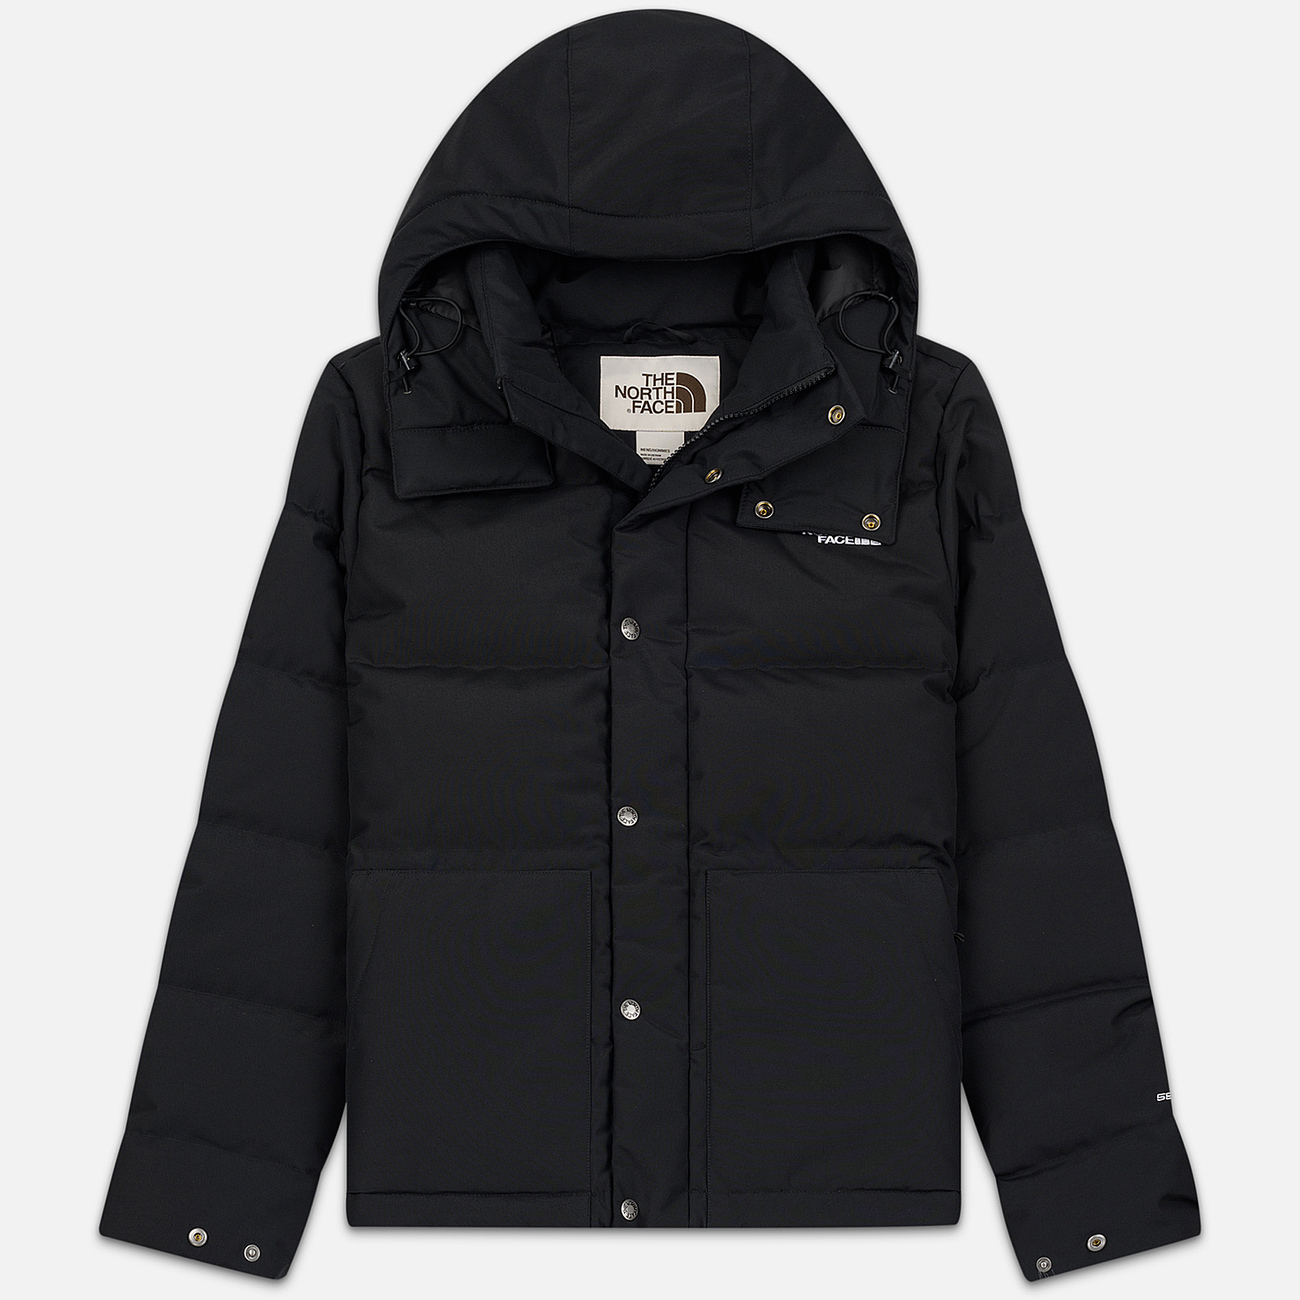 Мужской пуховик The North Face Canyon Box TNF Black